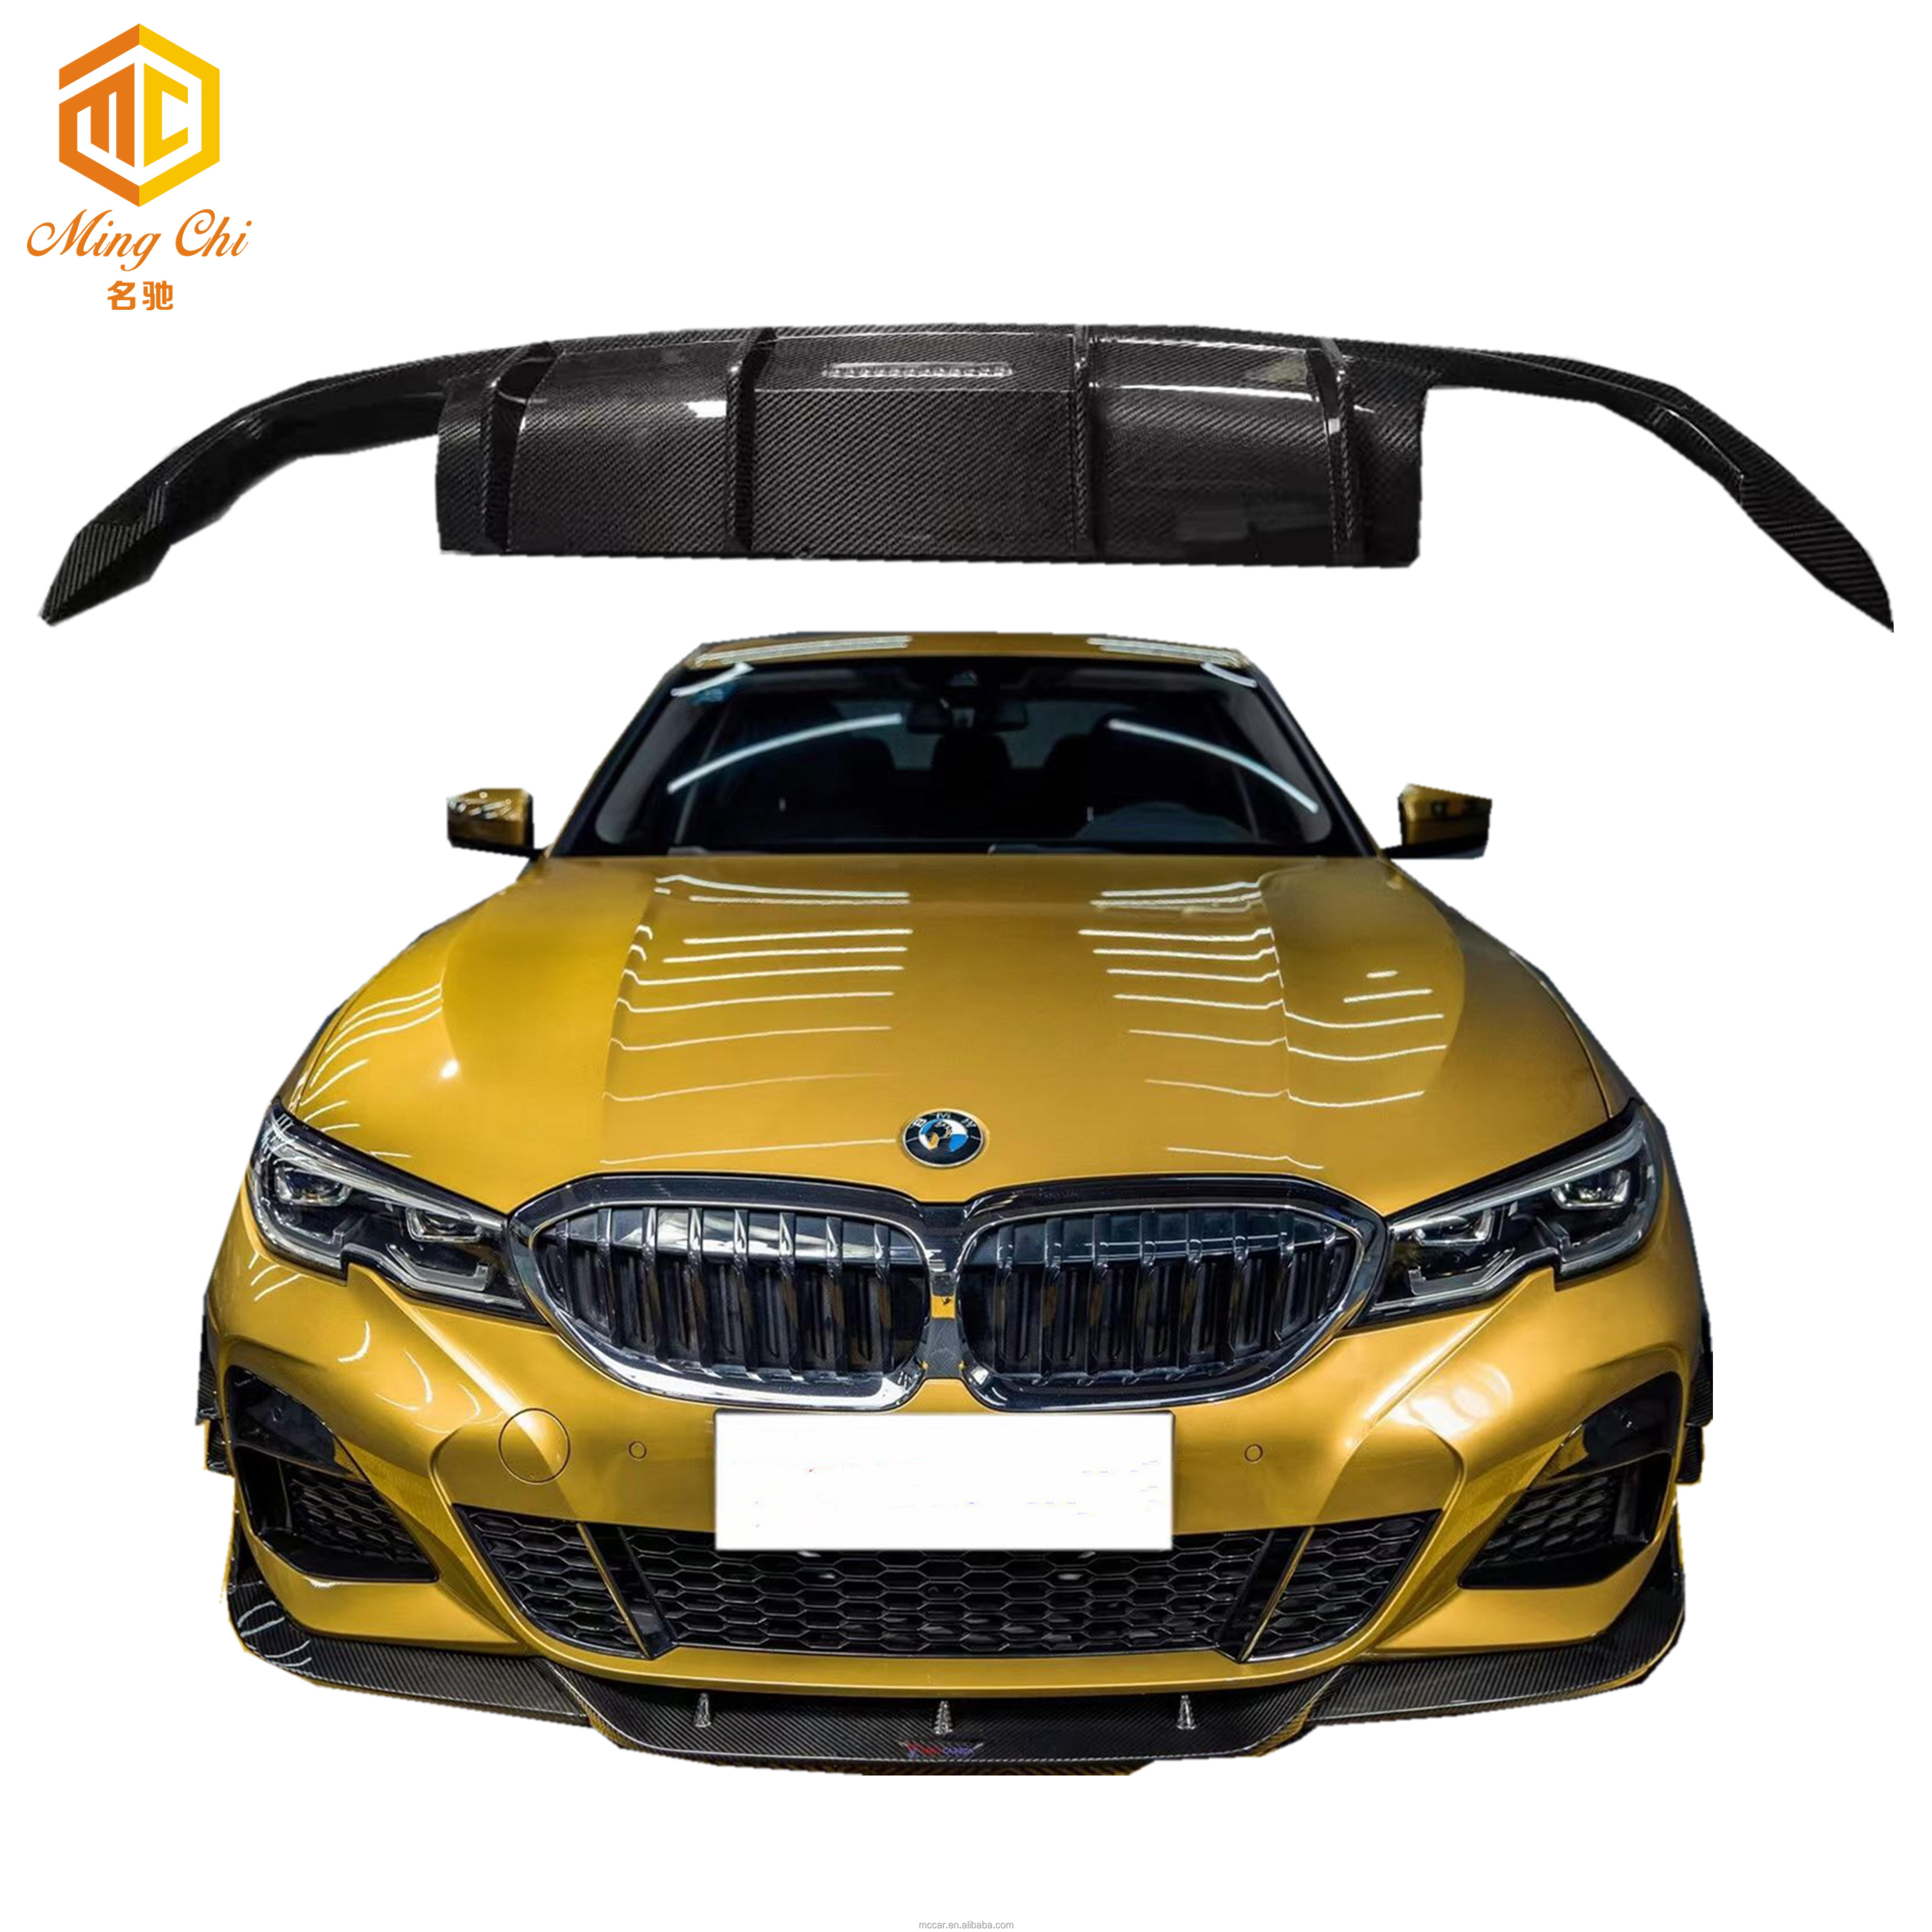 3-series G20 car body kit bumper front lip rear diffuser side skirt BUMPER TRIM debris for BMW 3-Series G20 330I 325I